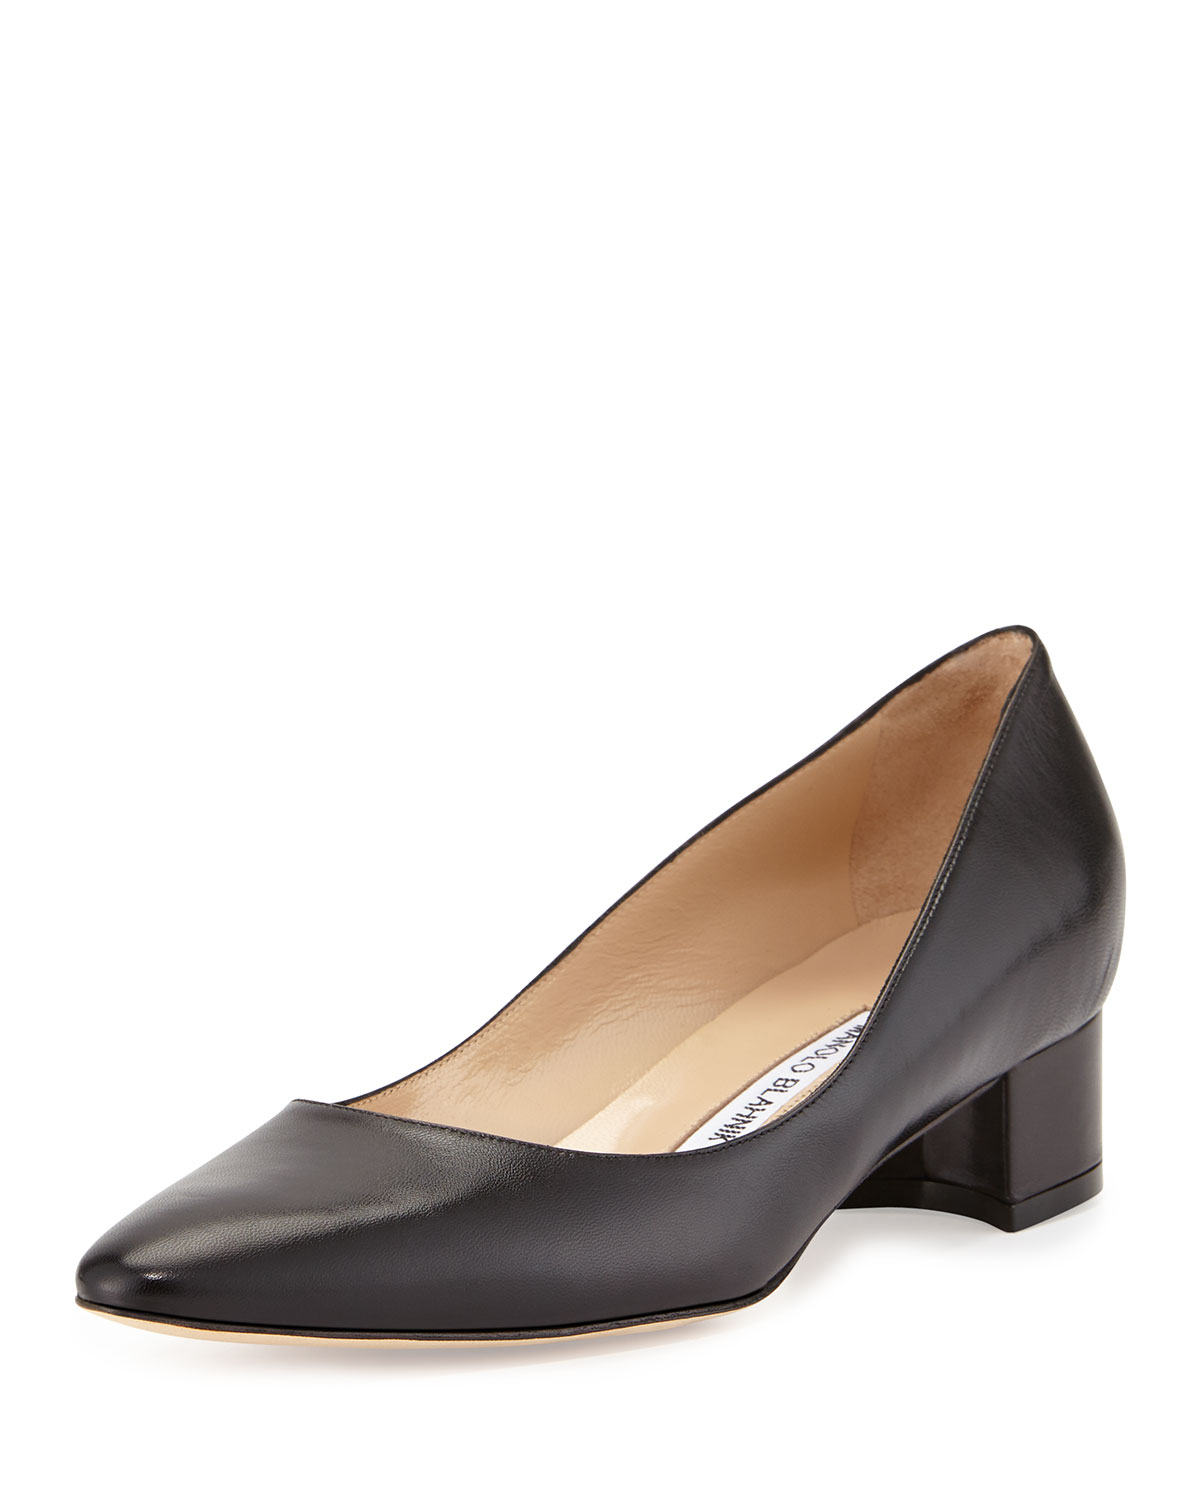 Manolo blahnik Listony Leather Low-heel Pump in Black | Lyst